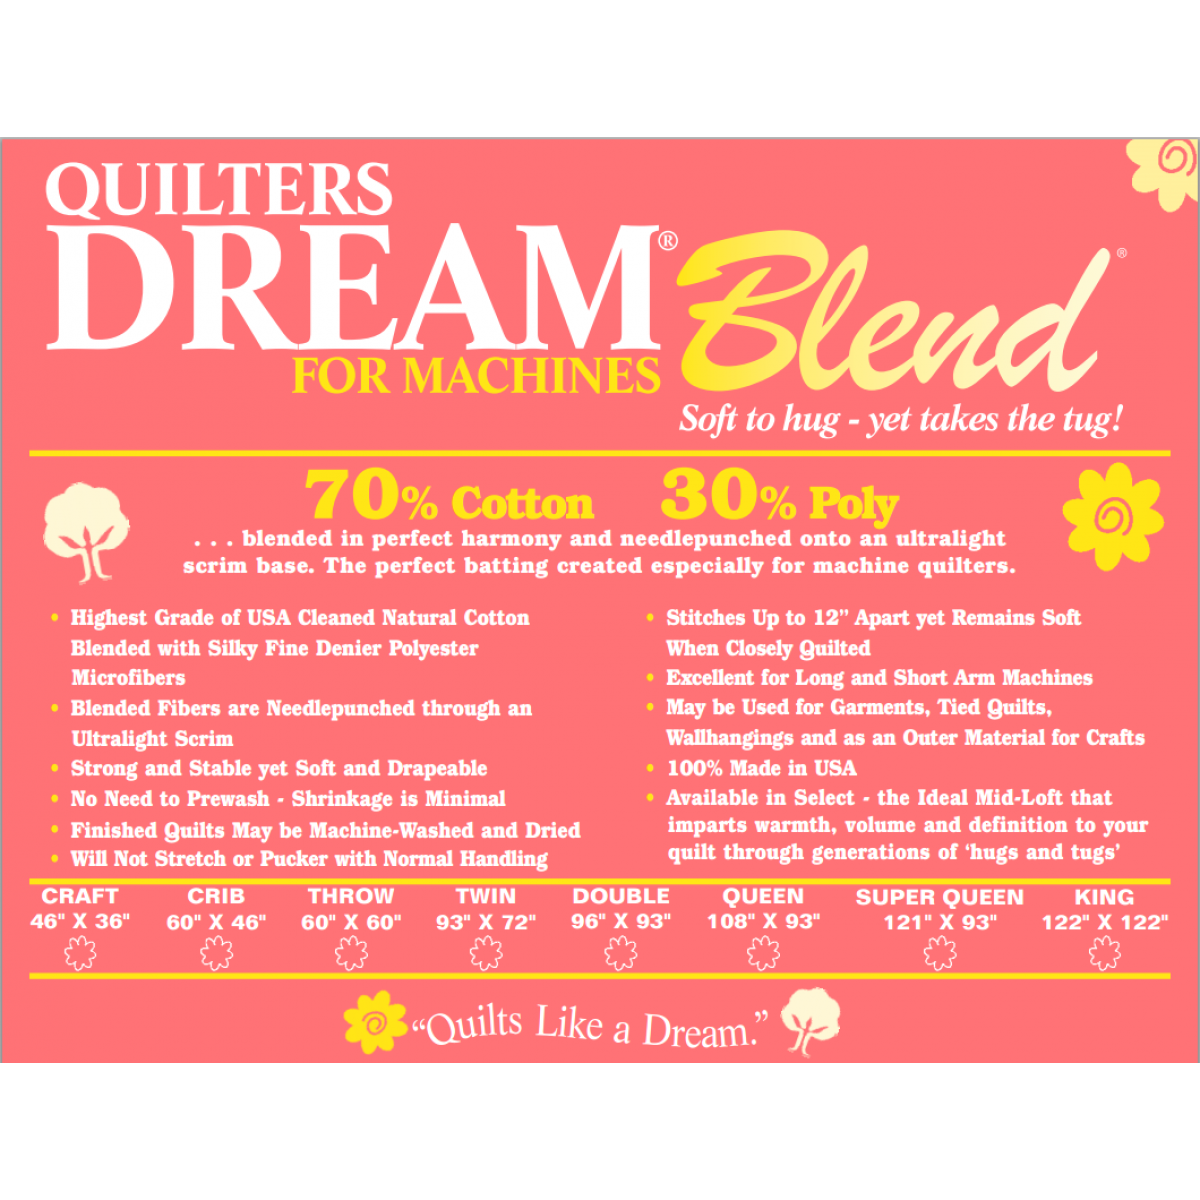 Queen Dream Blend Select for Machines Midloft by Quilters Dream